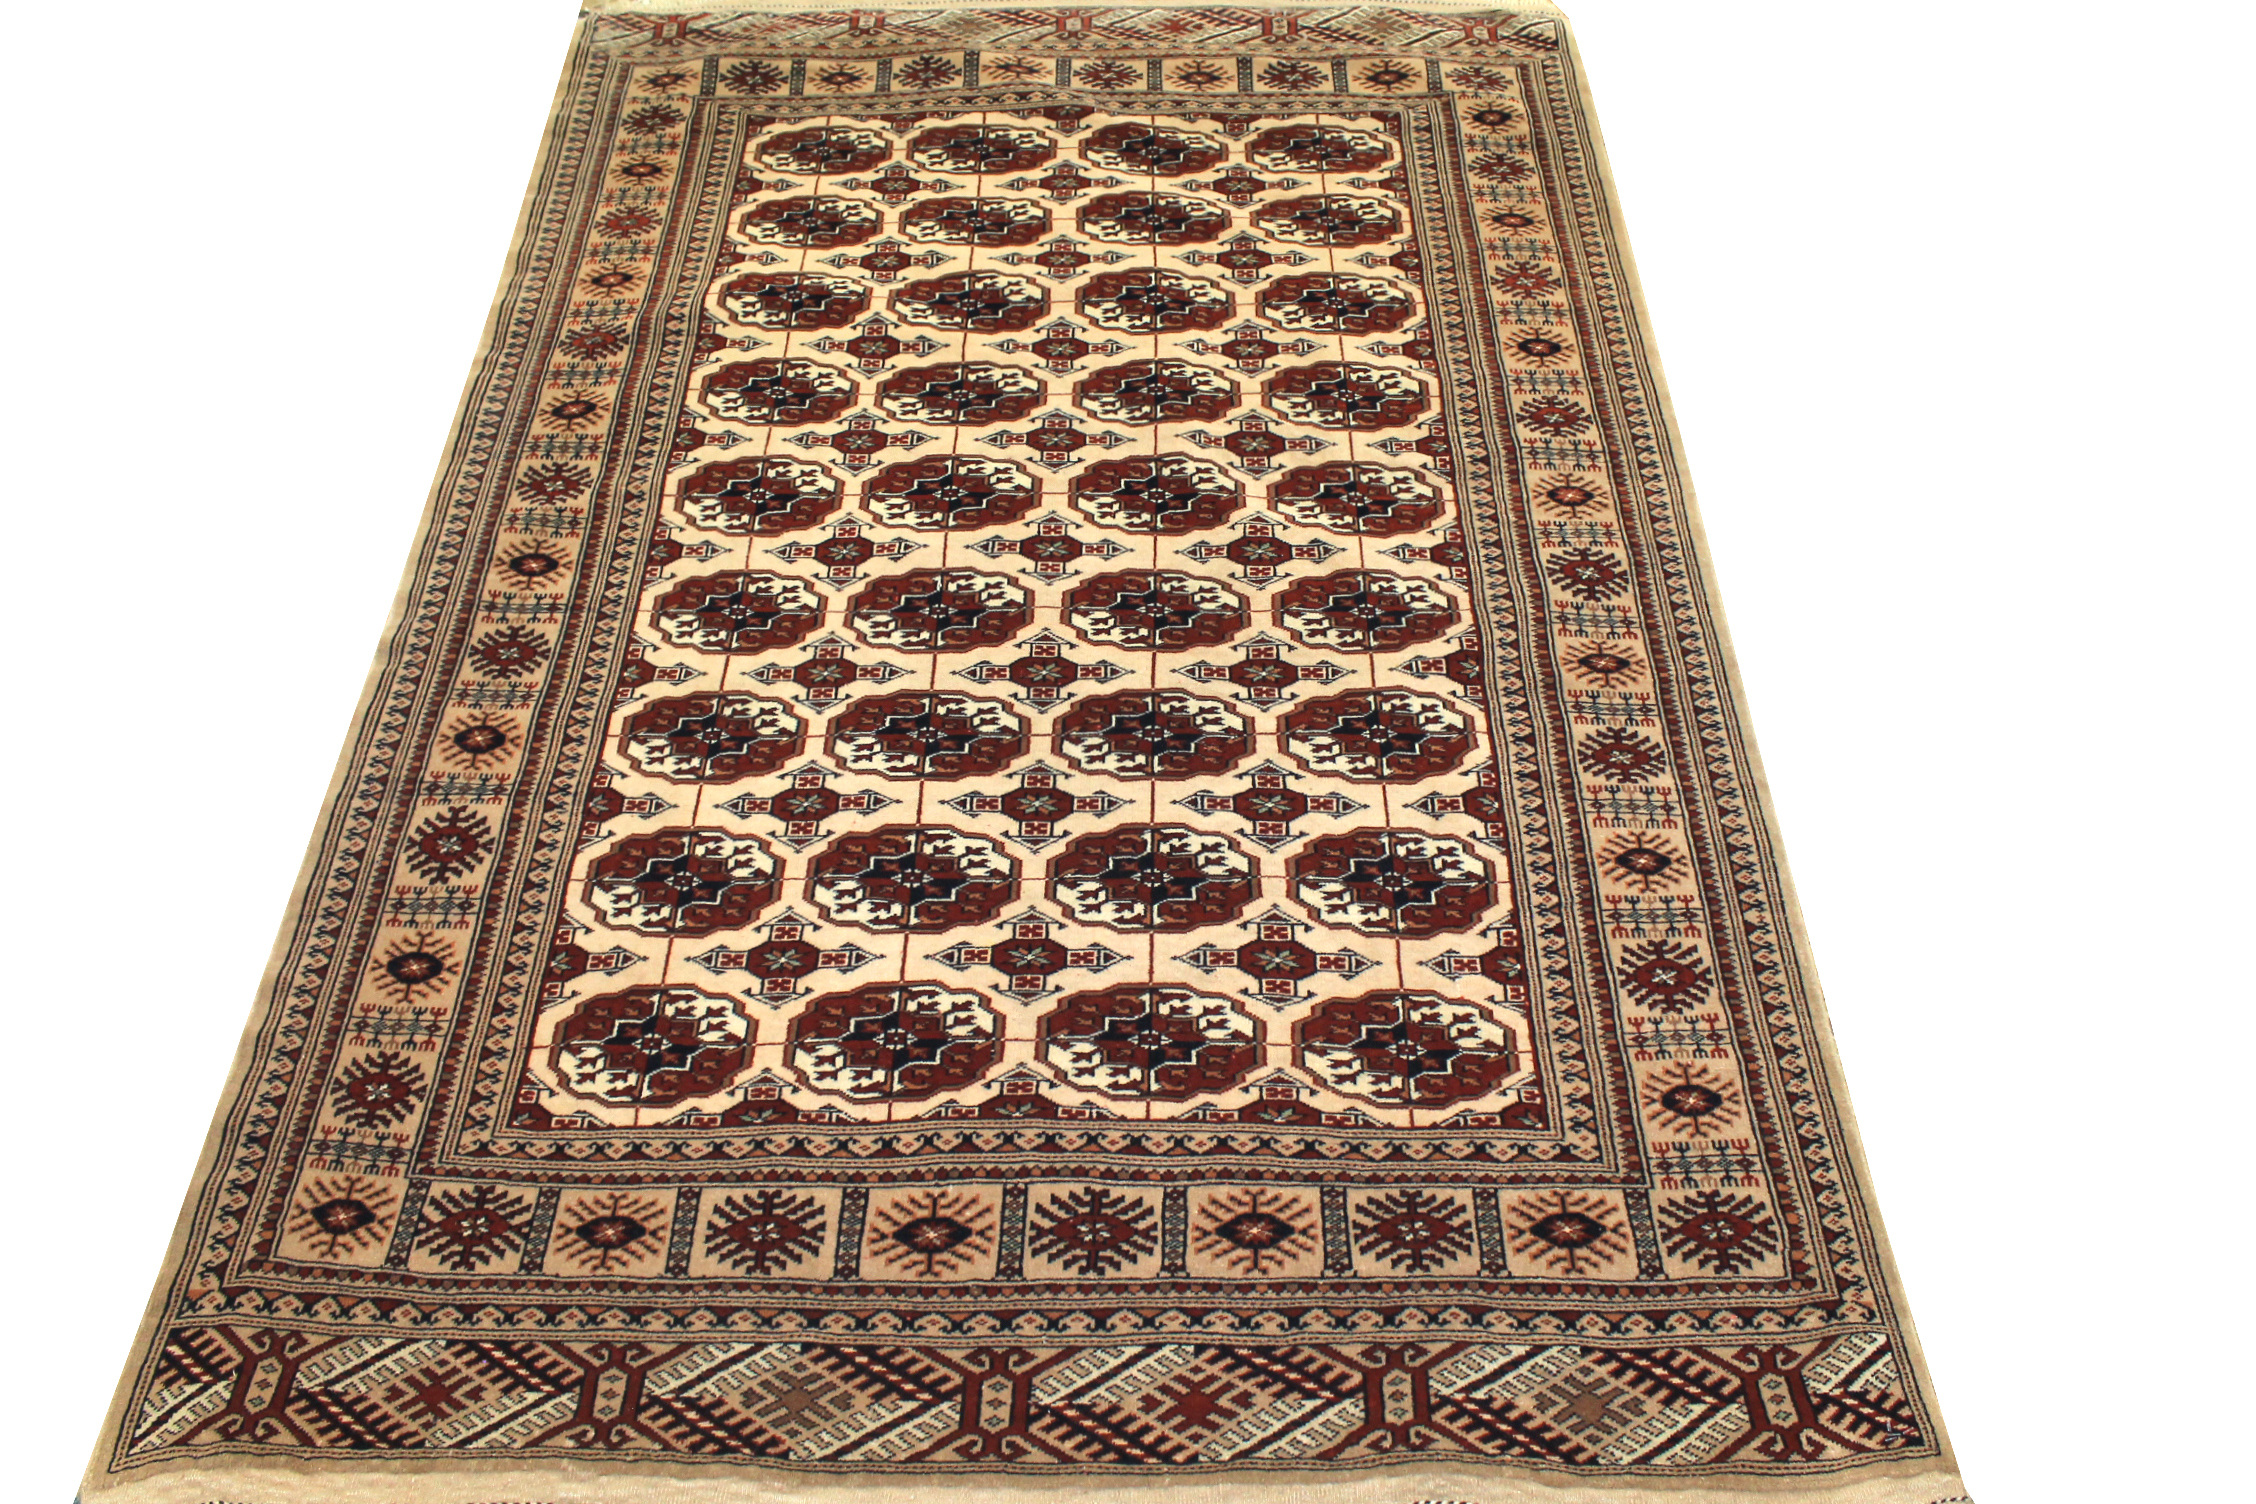 5x7/8 Bokhara Hand Knotted Wool Area Rug - MR0568